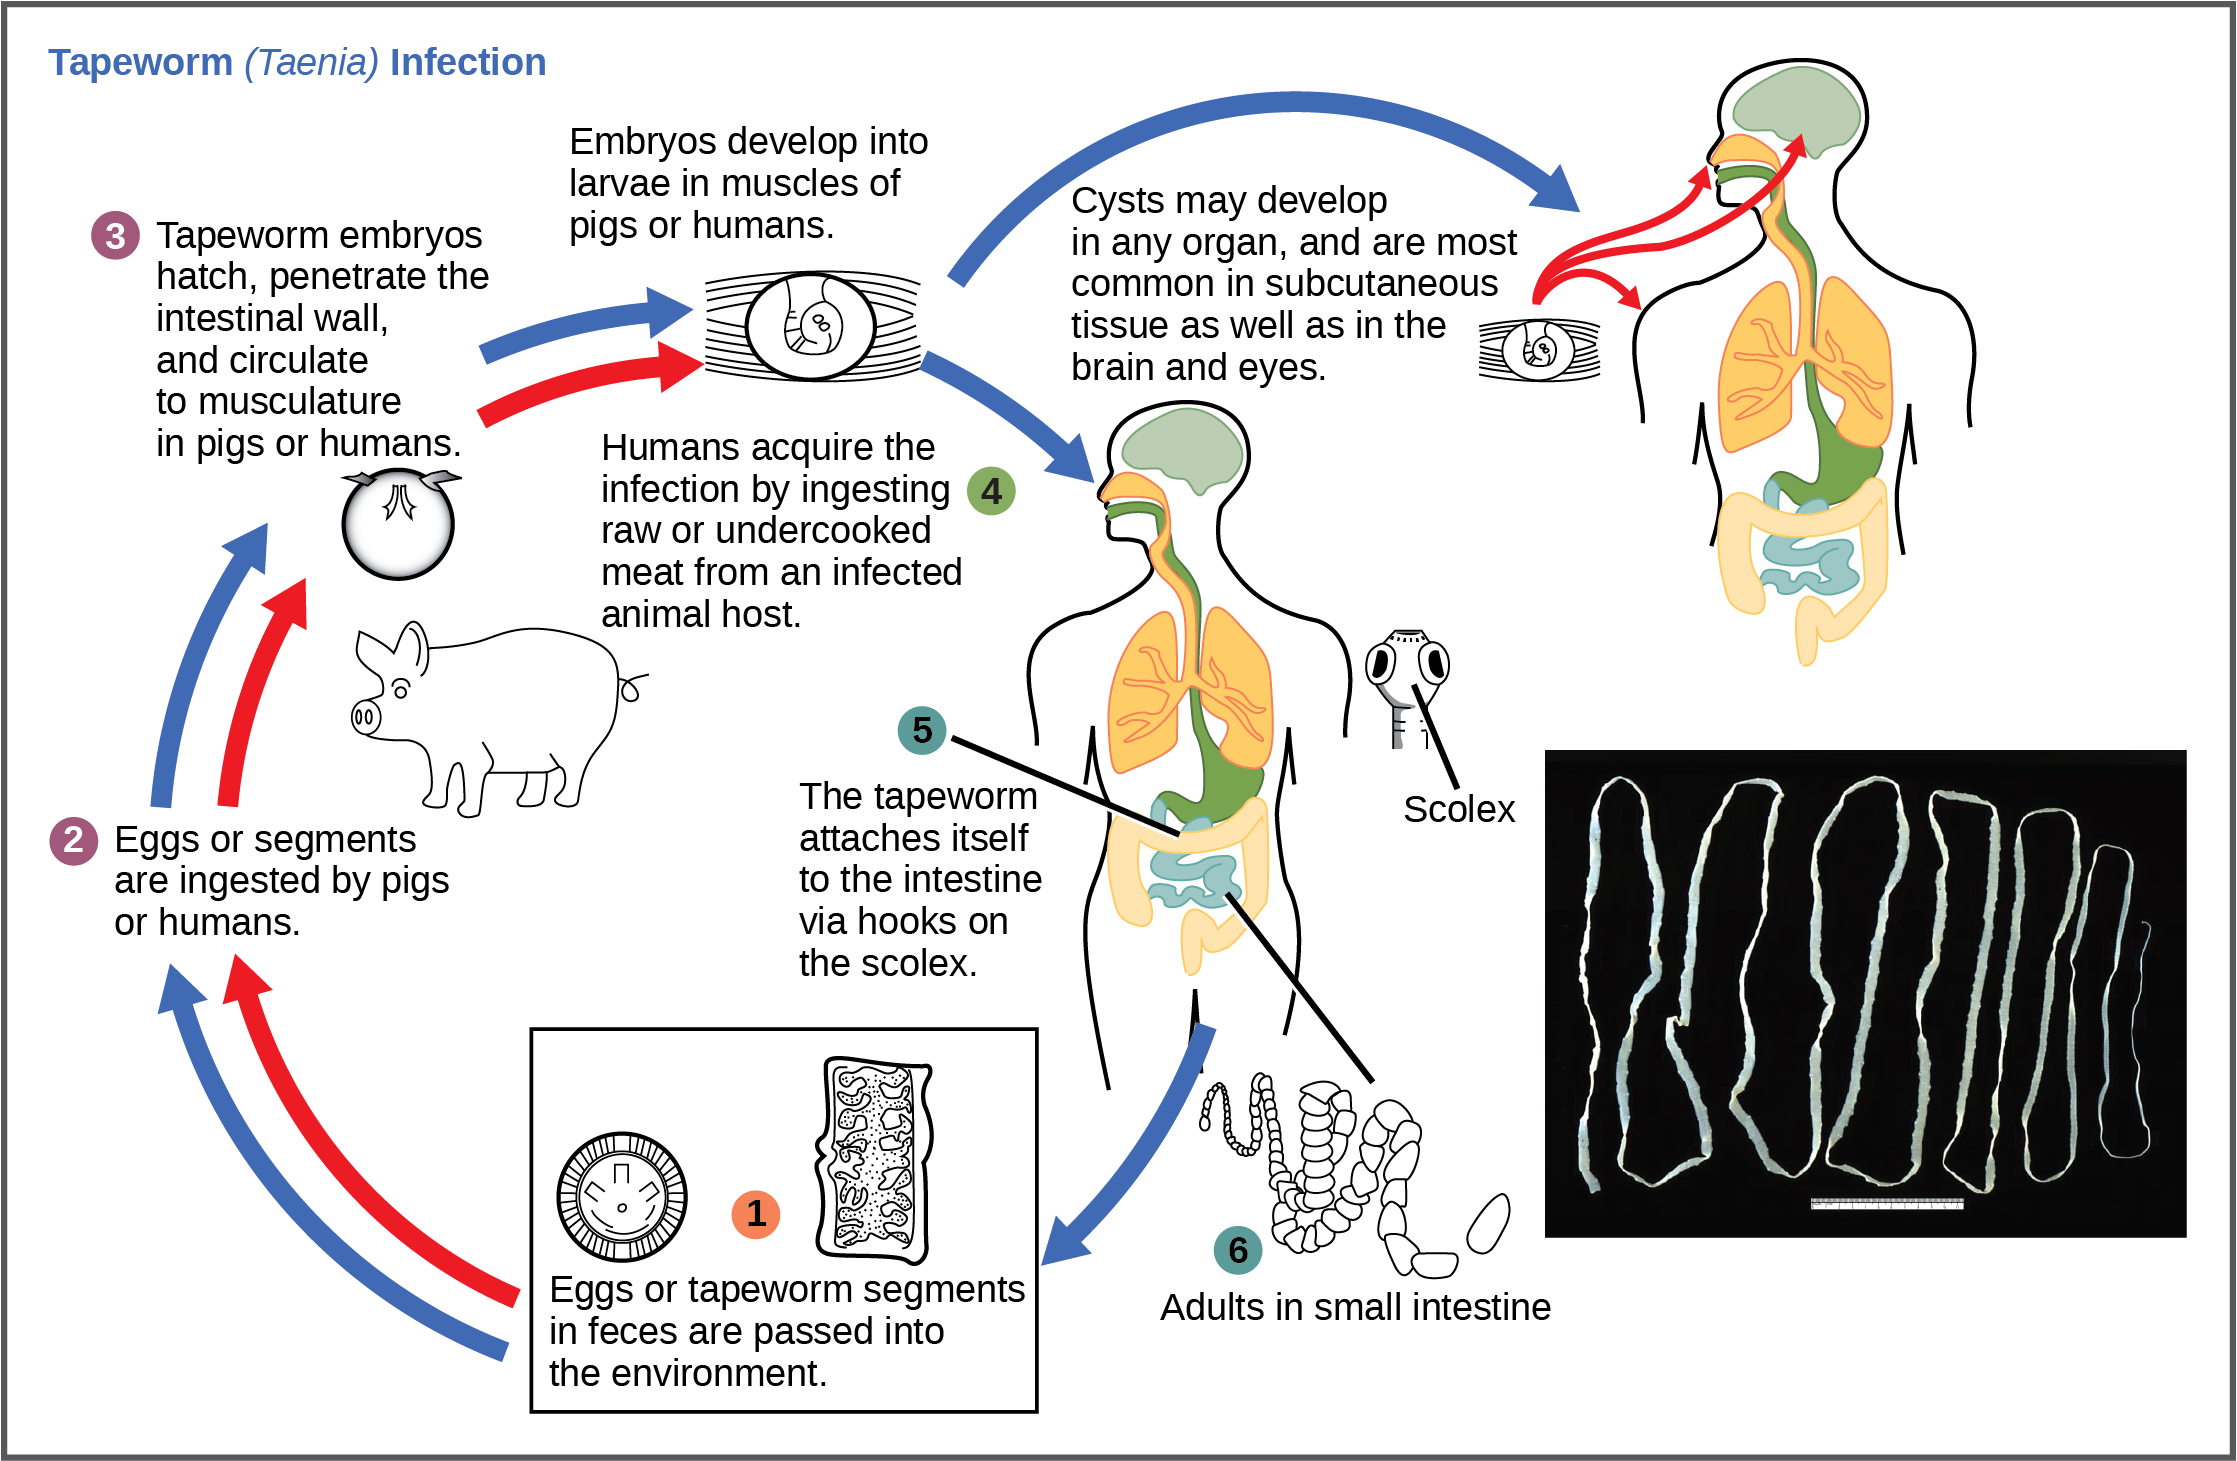 The life cycle of a tapeworm begins when eggs or tapeworm segments in the feces are ingested by pigs or humans. The embryos hatch, penetrate the intestinal wall, and circulate to the musculature in both pigs and humans. Humans may acquire a tapeworm infection by ingesting raw or undercooked meat. Infection may results in cysts in the musculature, or in tapeworms in the intestine. Tapeworms attach themselves to the intestine via a hook-like structure called the scolex. Tapeworm segments and eggs are excreted in the feces, completing the cycle.